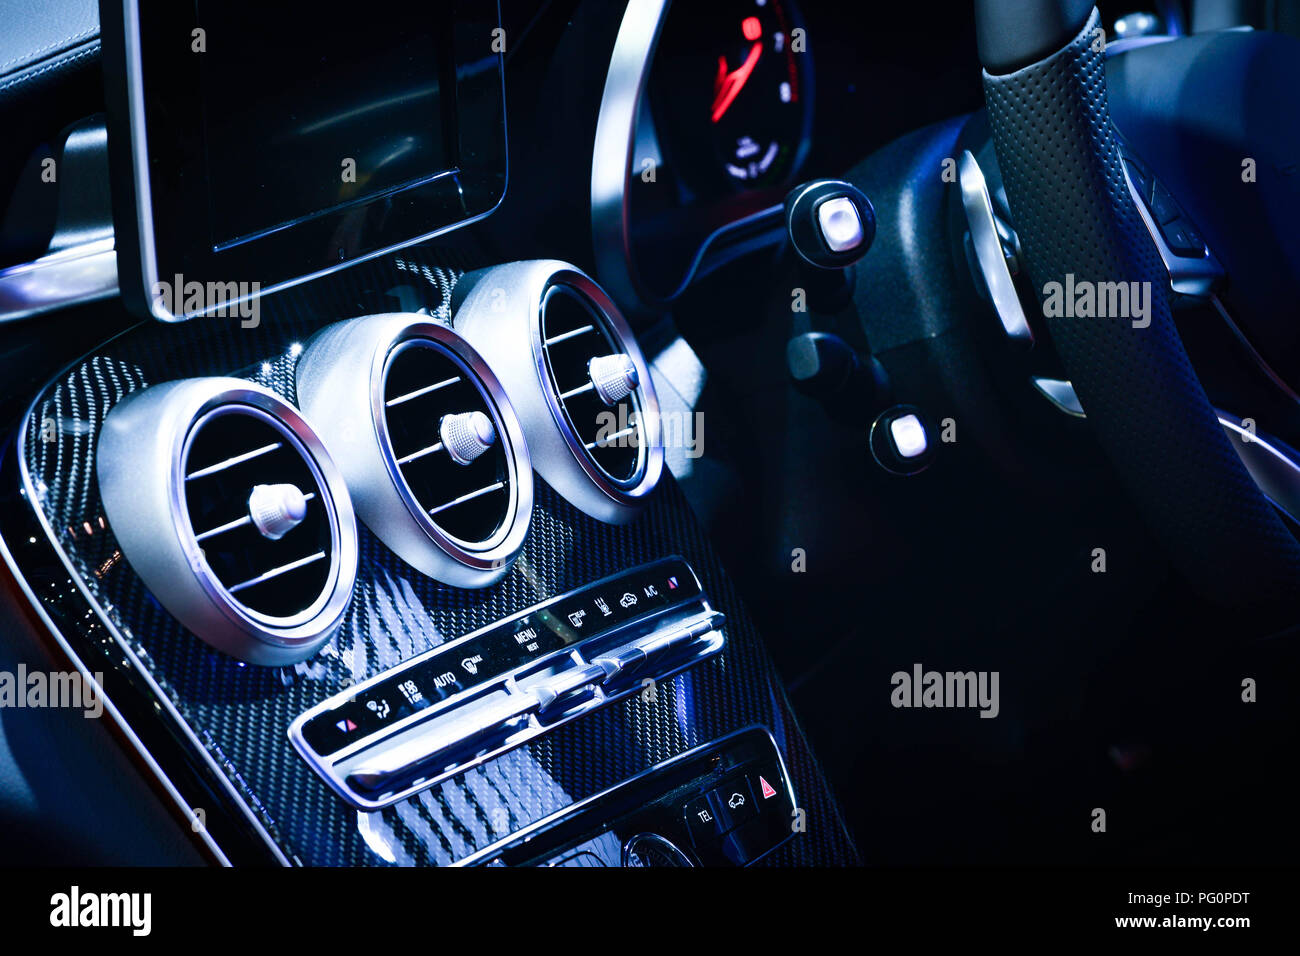 car ventilation system and air conditioning - details and controls of modern car. - Stock Image